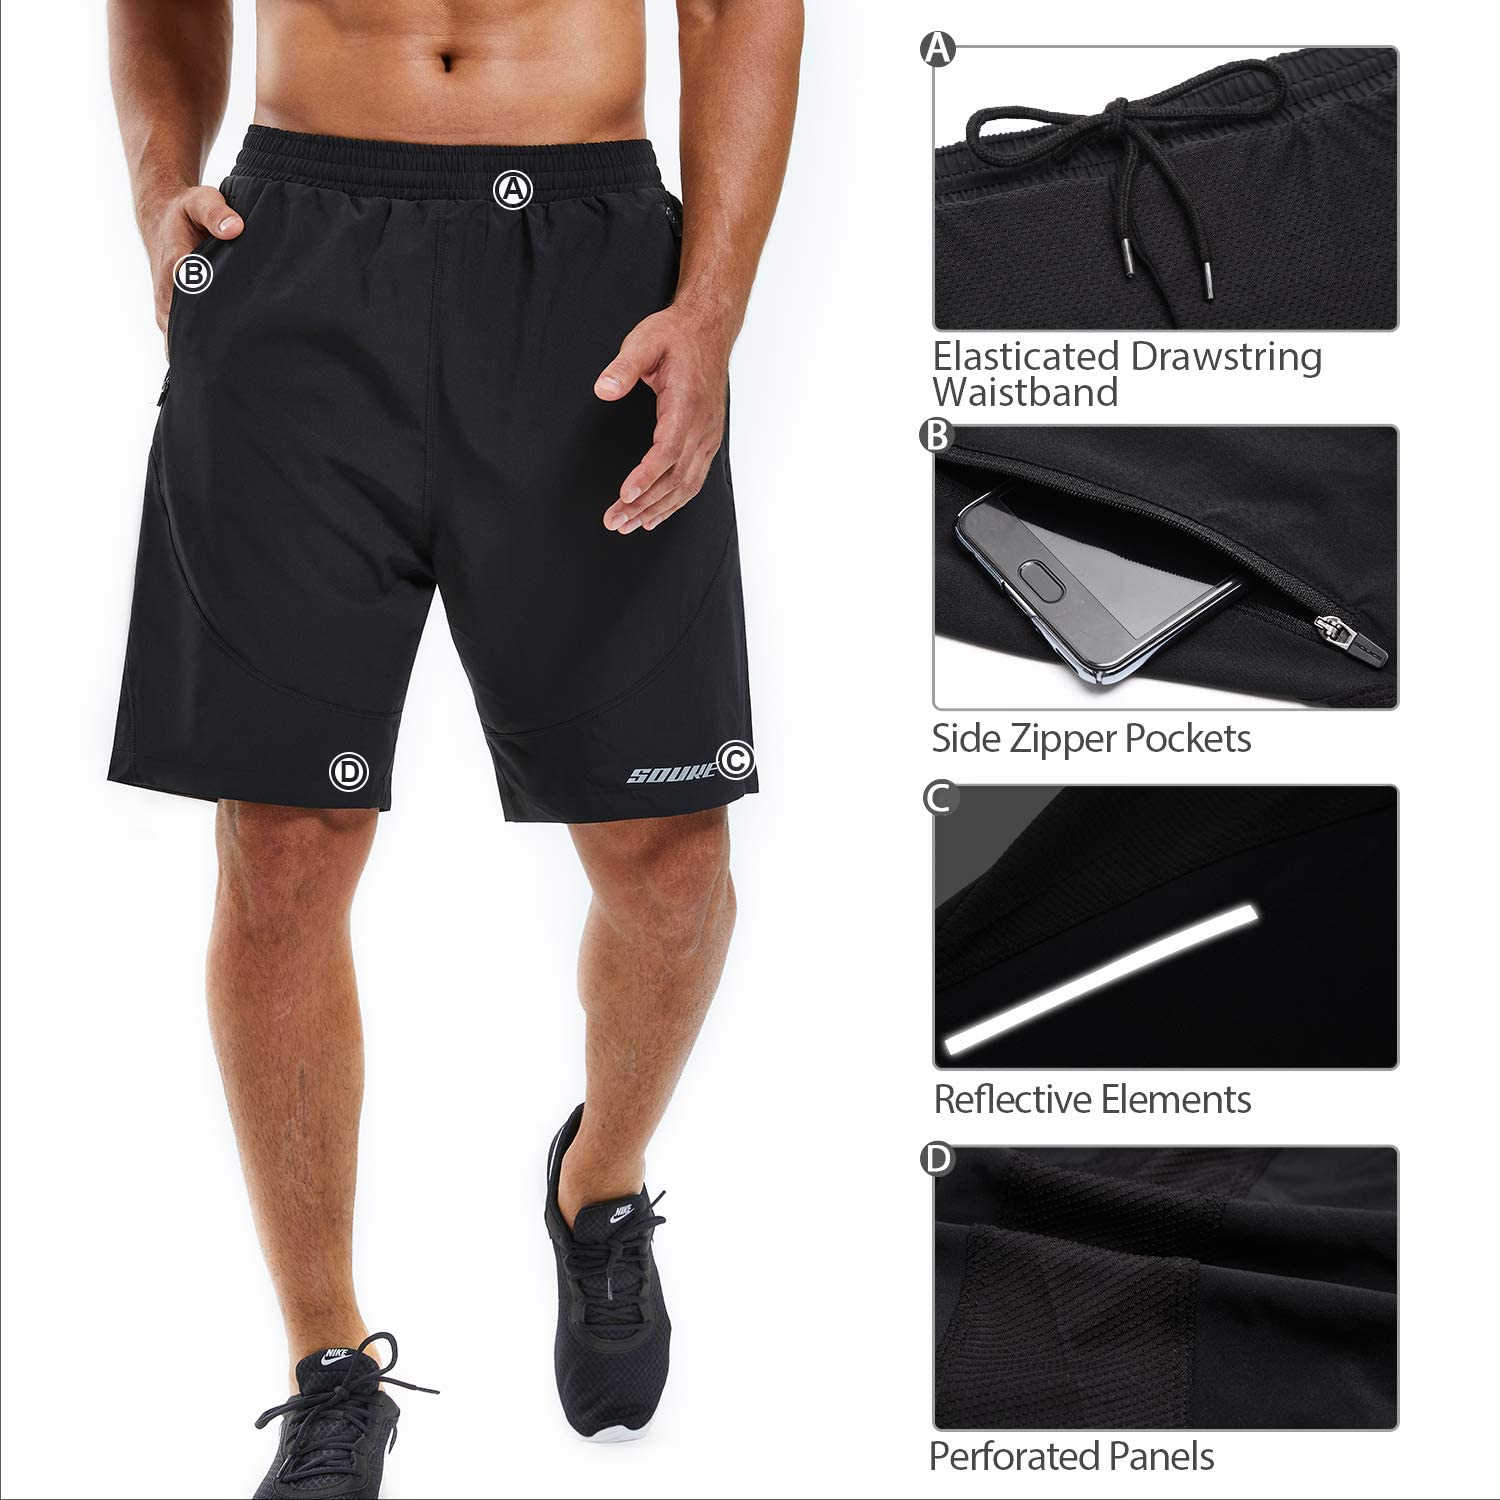 Souke Sports Mens Workout Running Shorts Quick Dry Athletic Performance Shorts Black Liner Zip Pockets